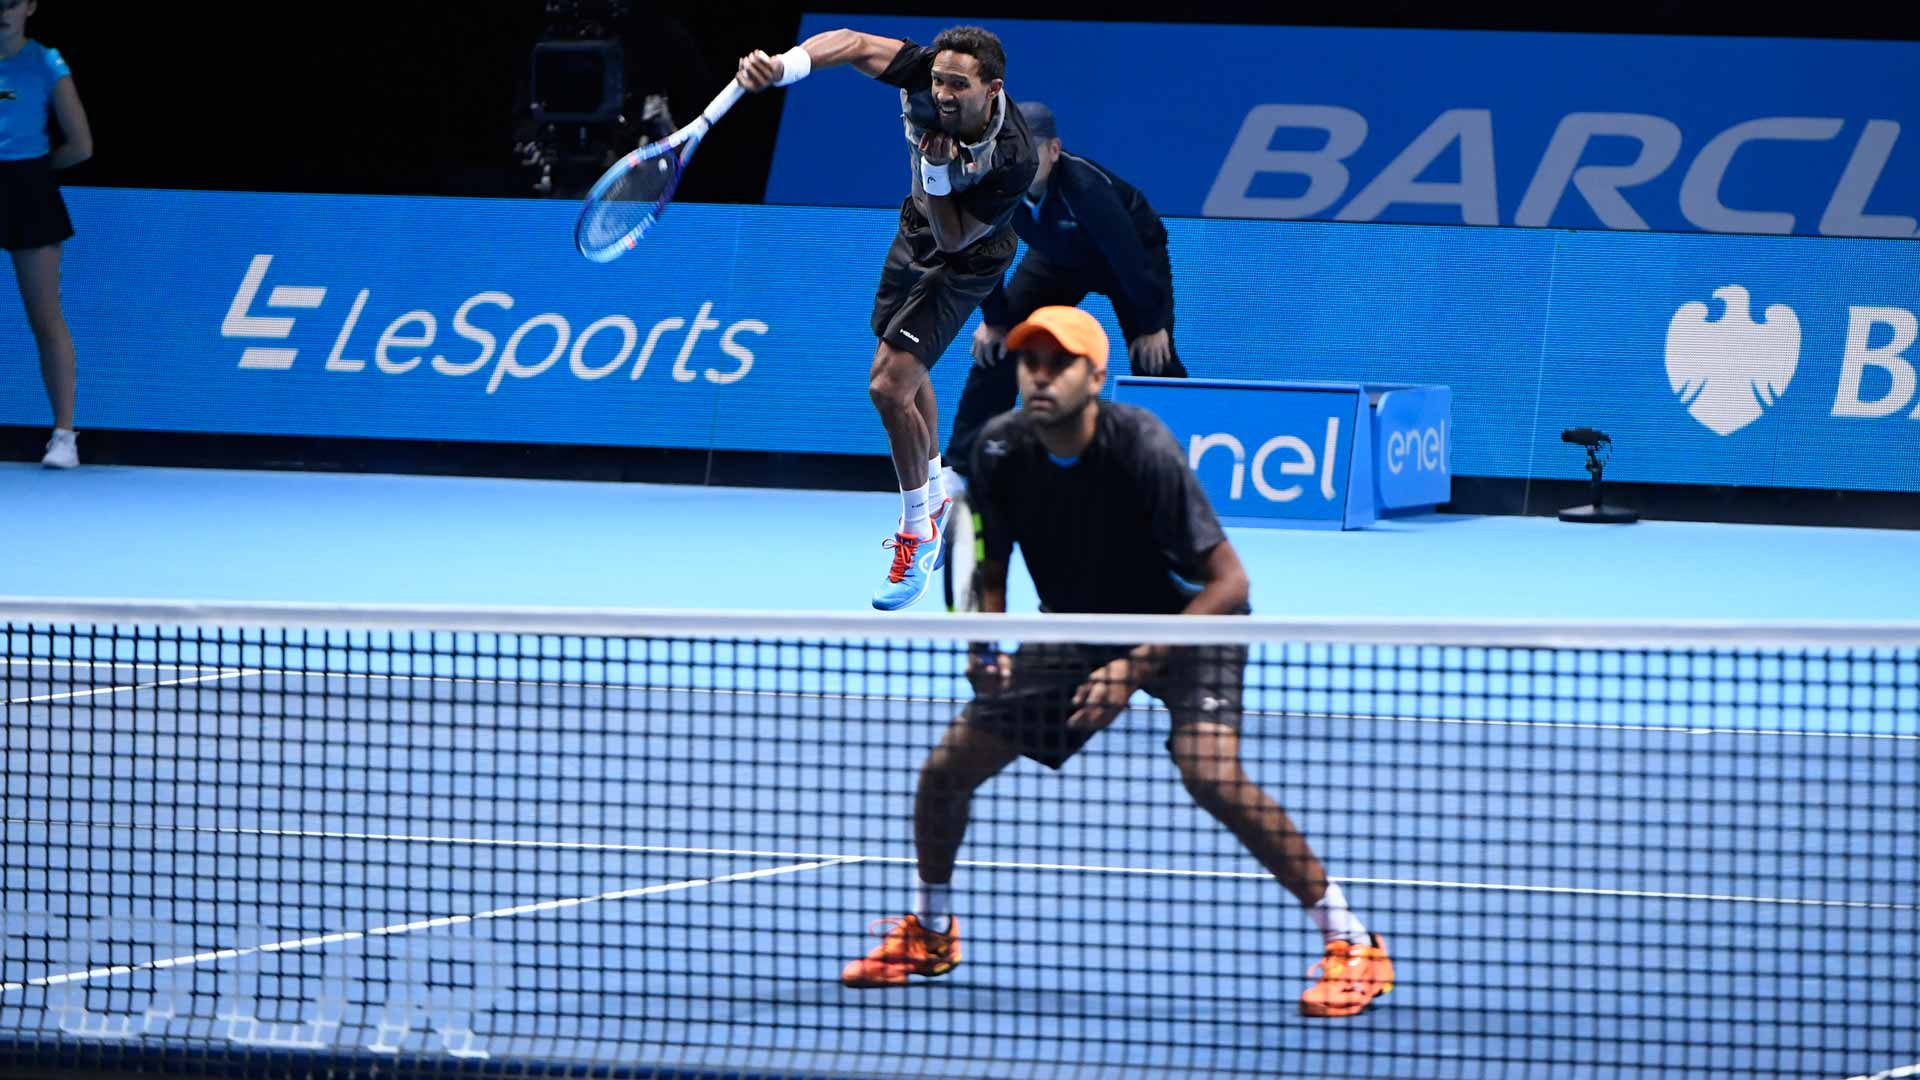 Raven Klaasen (L) and Rajeev Ram continue their dream run at the Barclays ATP World Tour Finals.